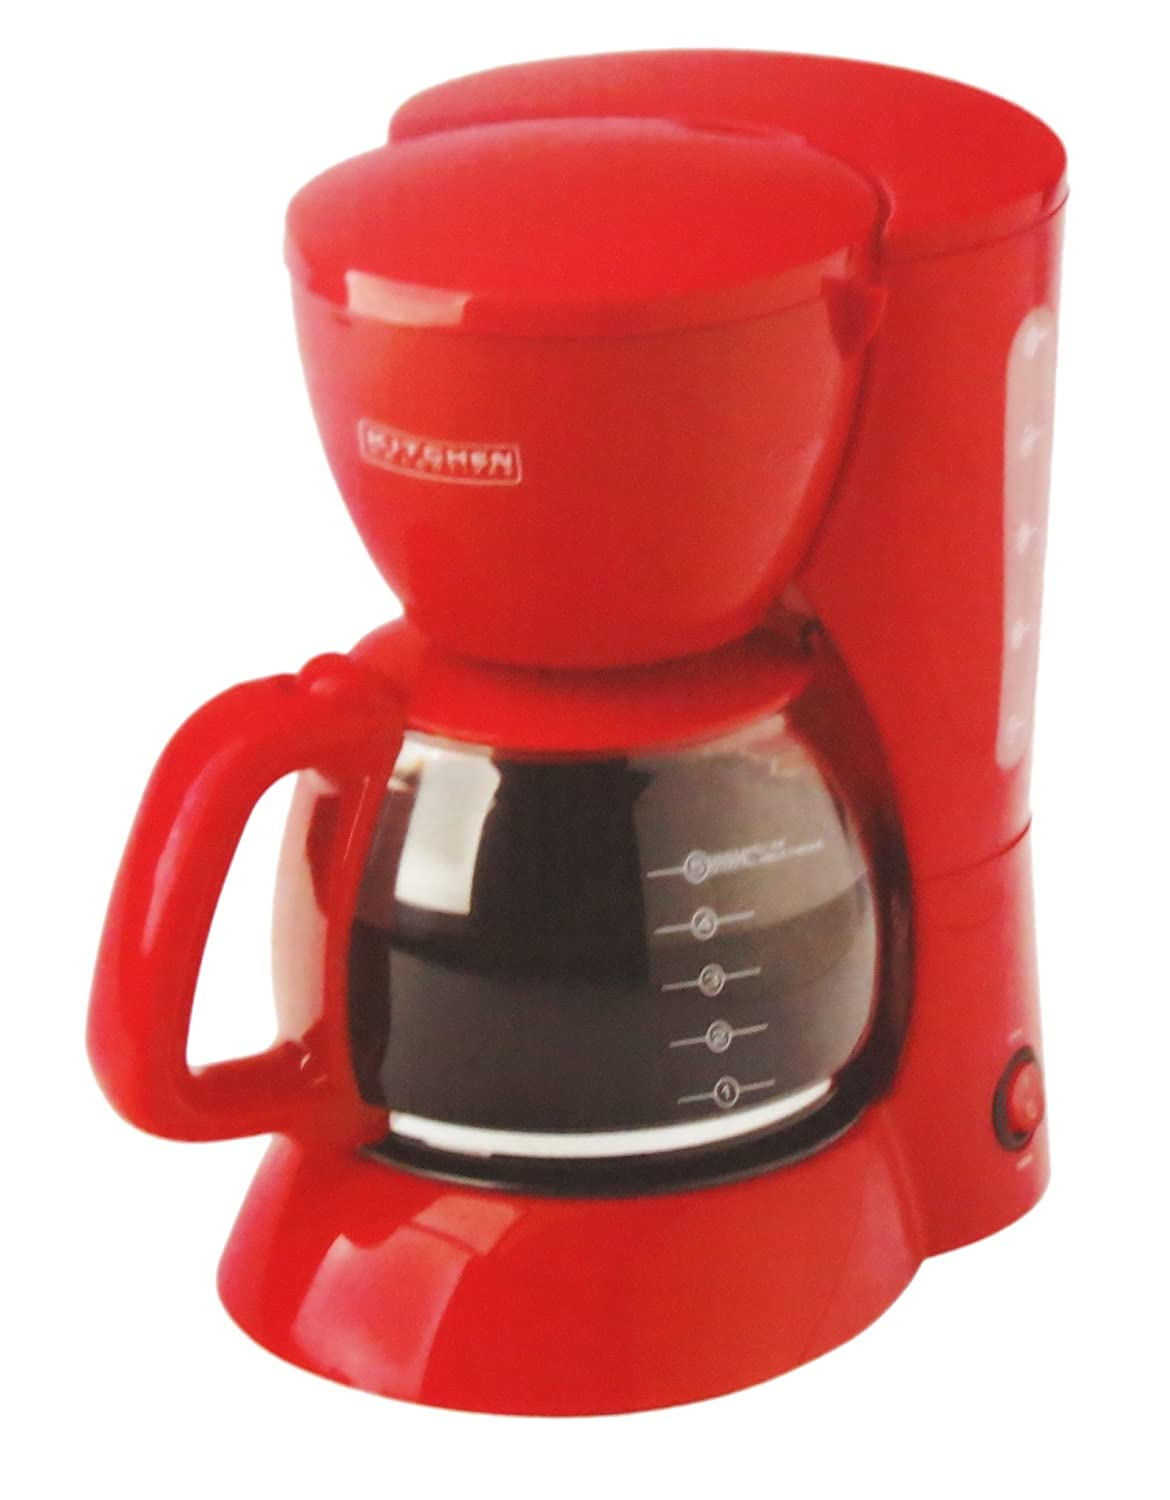 5 Cup Coffee Maker Amazoncom Kitchen Selectives Colors Red 5 Cup Coffee Maker